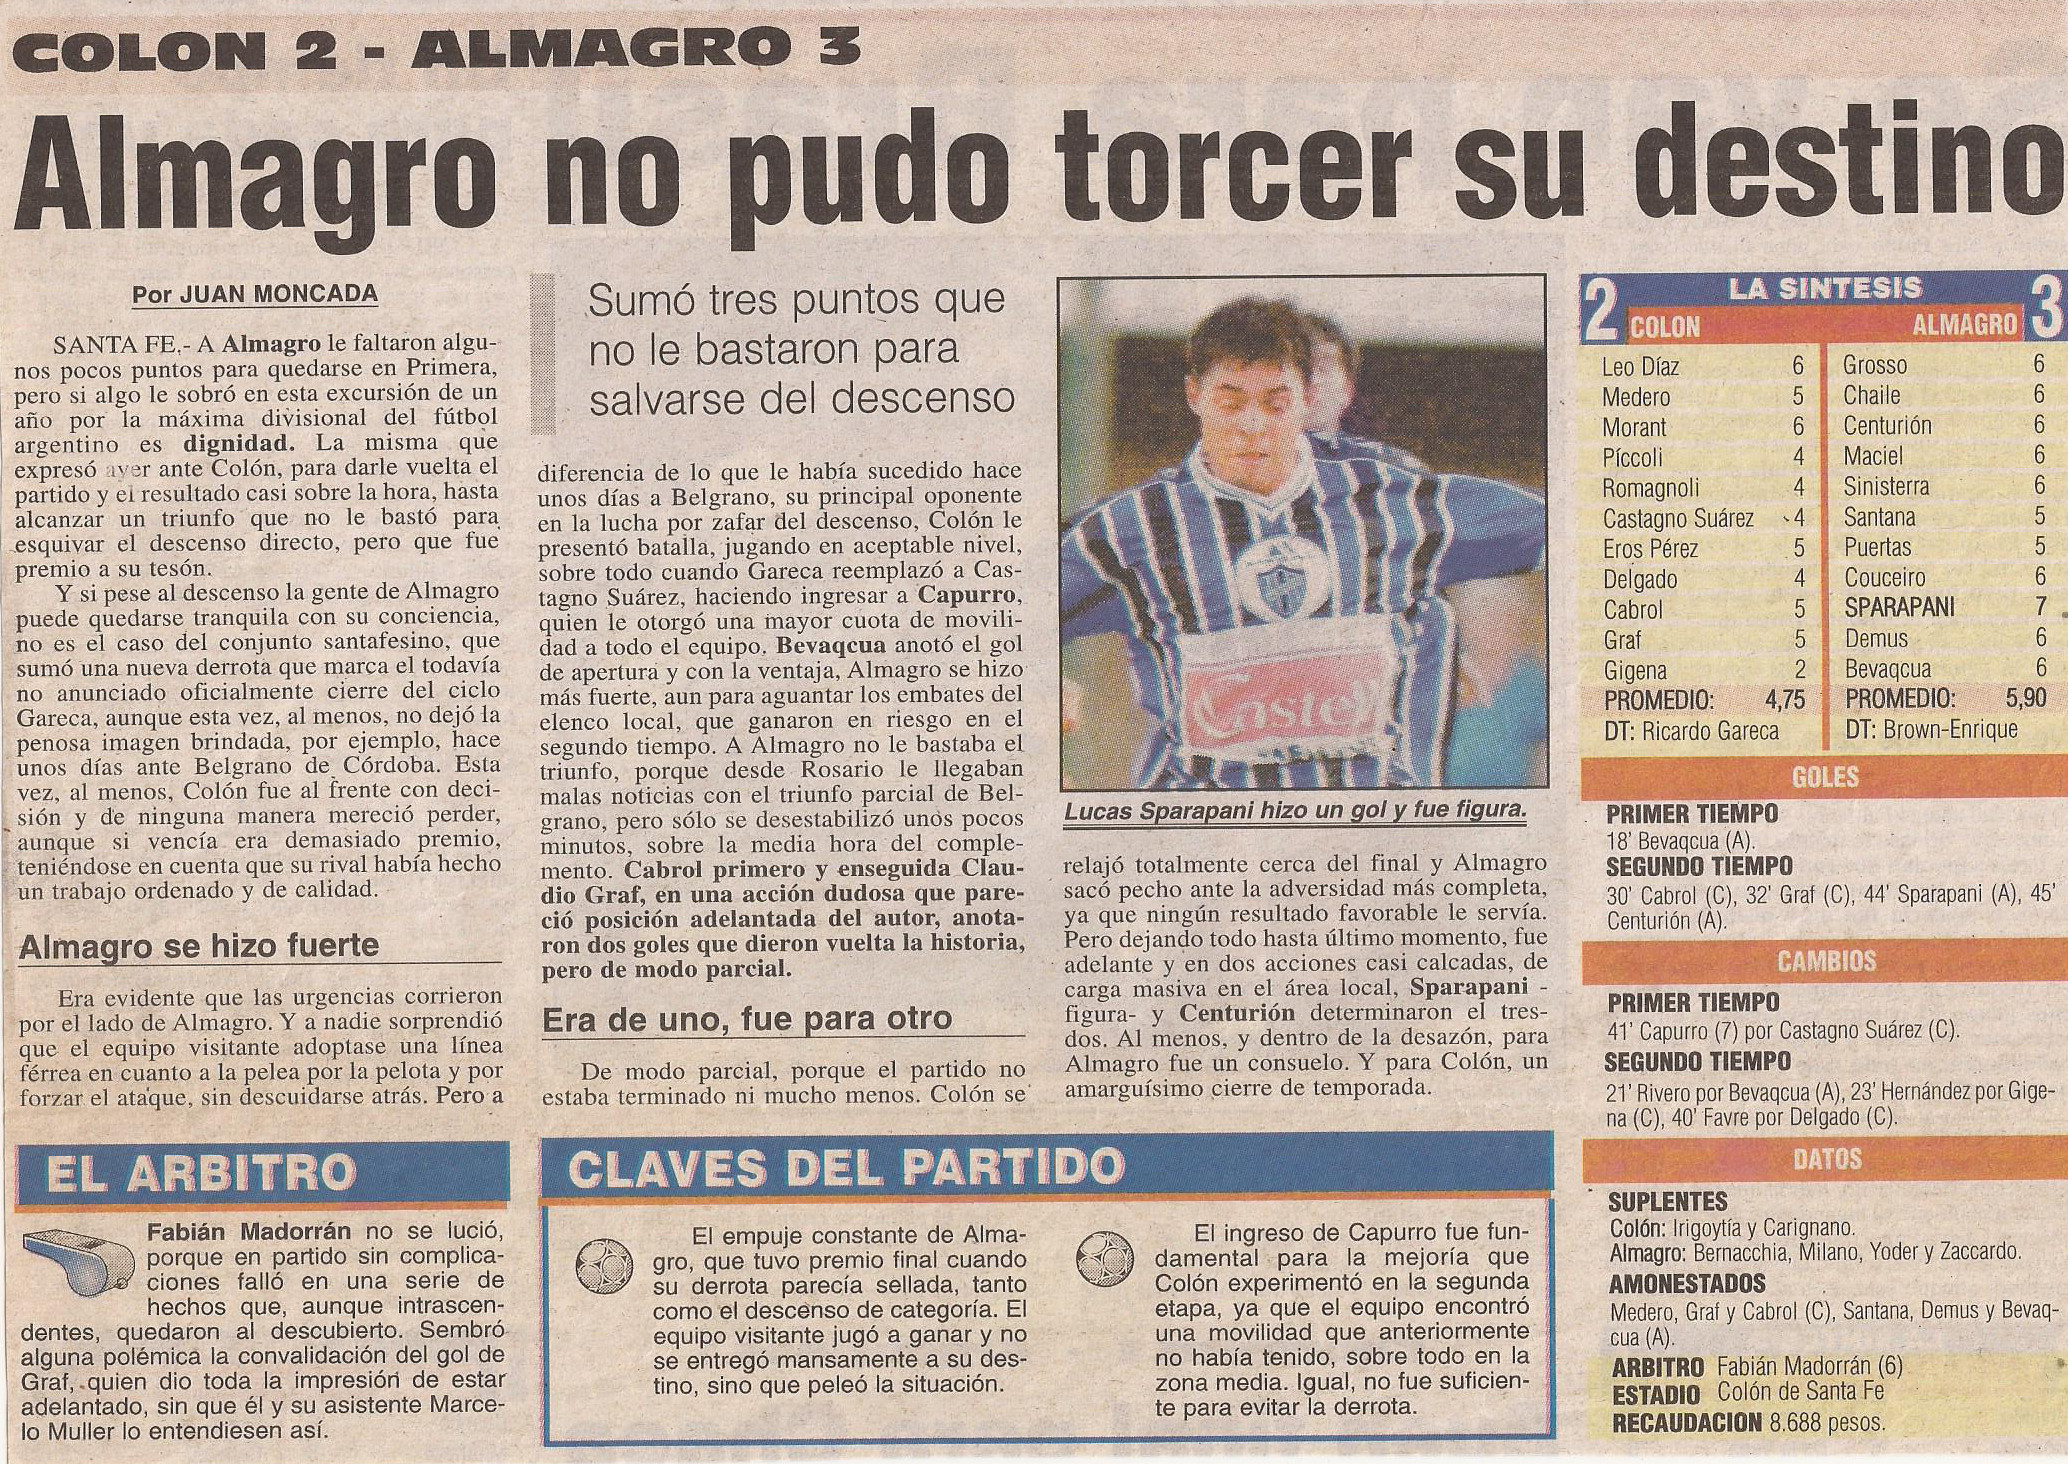 2000-01 Primera Division - Colon vs Almagro- Diario Popular